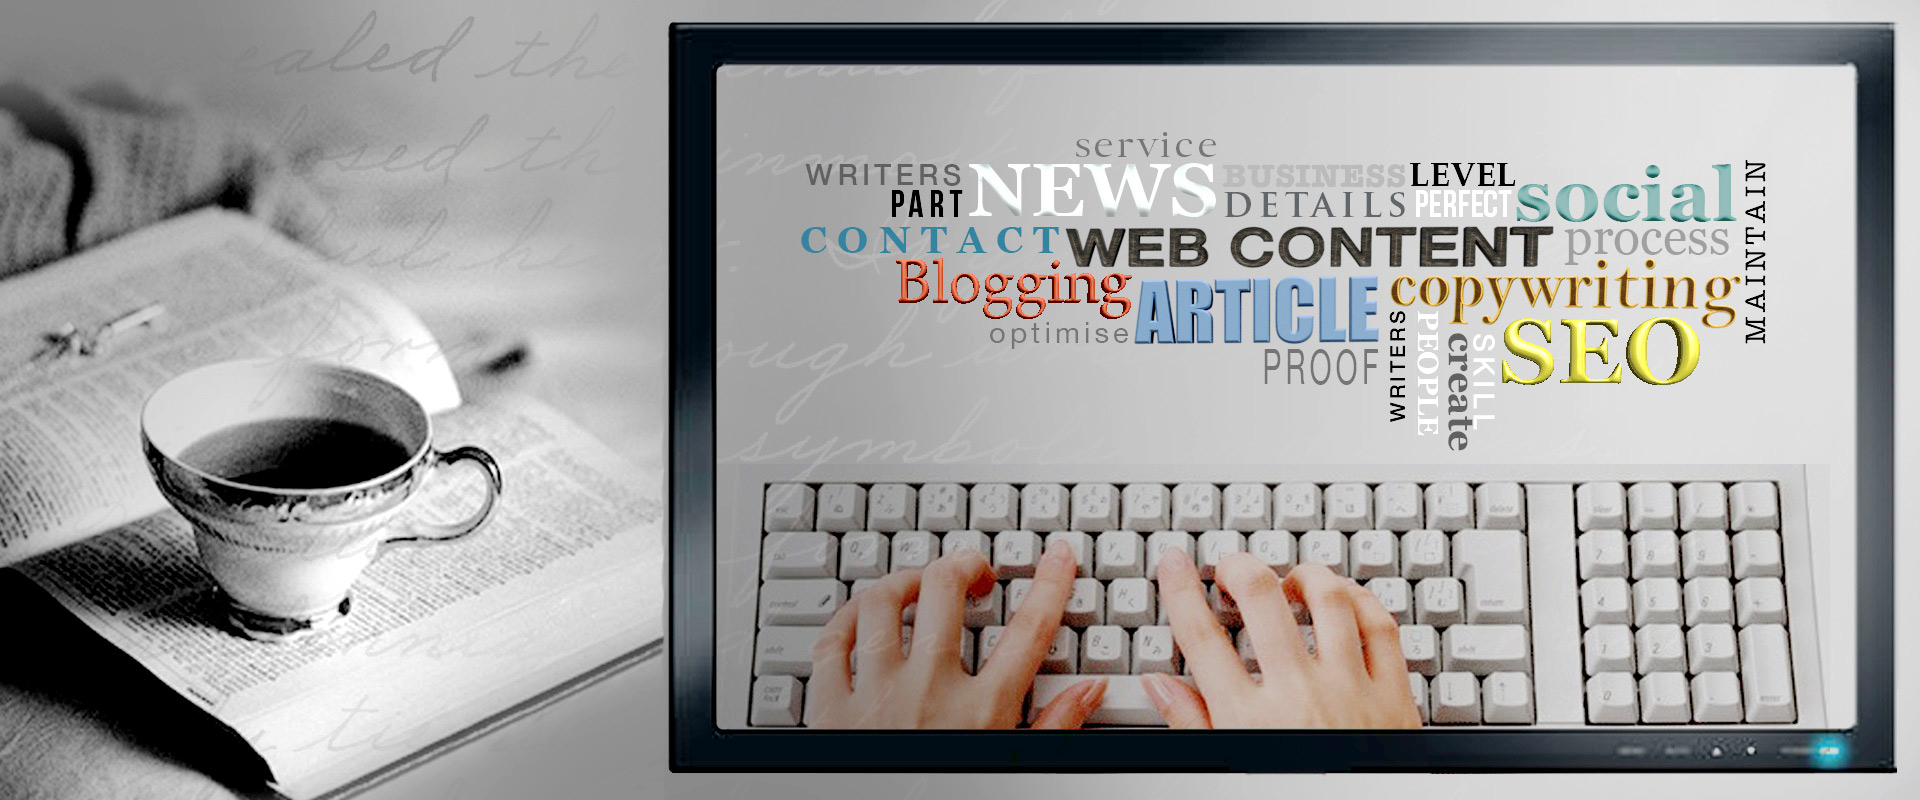 Orange County Content Writing compay iGeekTeam provides high quality, affordable web content writing services including Article Writing, Blog Writing, Copywriting, eBook Writing, Social Media Writing, Ghostwriting, Press releases.